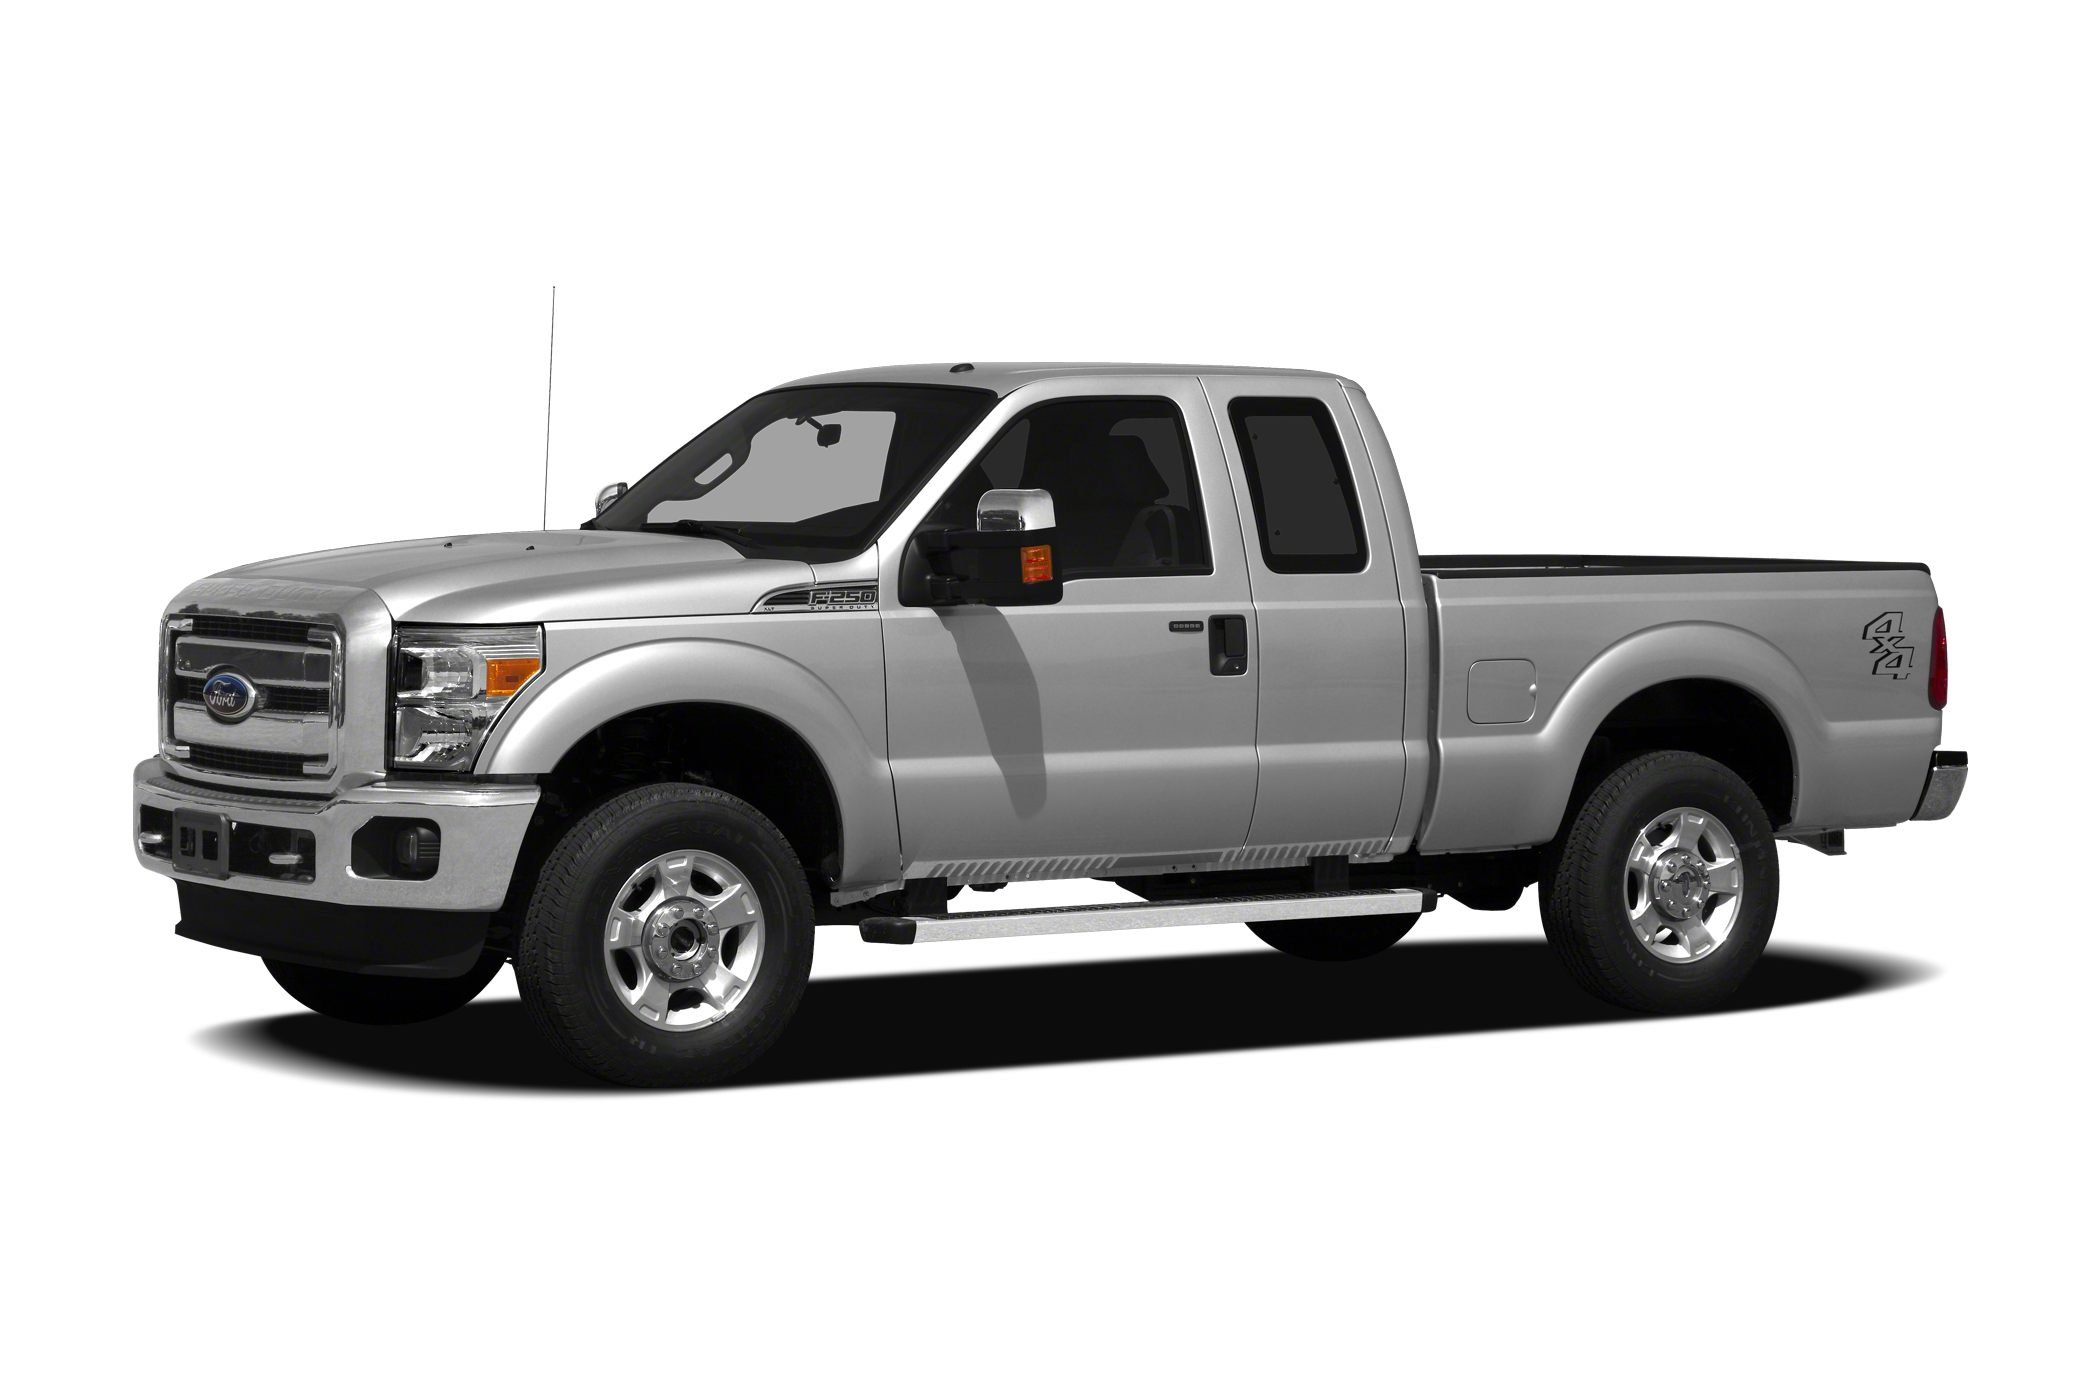 2012 Ford F250 Lariat Crew Cab Pickup for sale in Marshall for $47,500 with 34,000 miles.